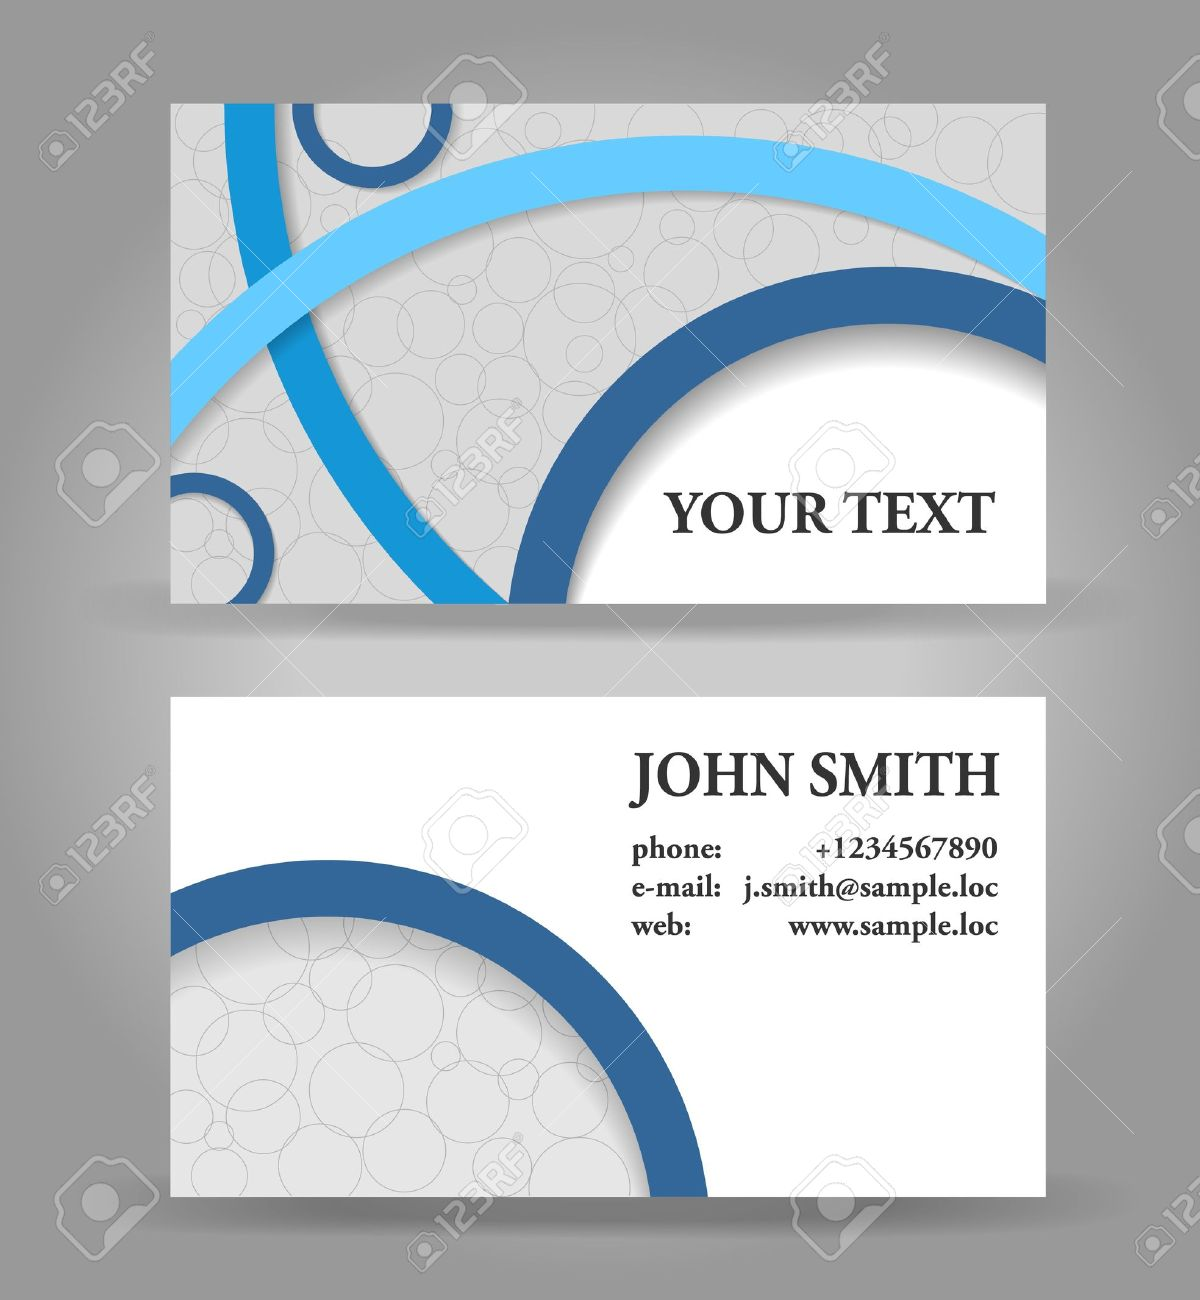 Blue and gray modern business card template royalty free cliparts blue and gray modern business card template stock vector 14585169 accmission